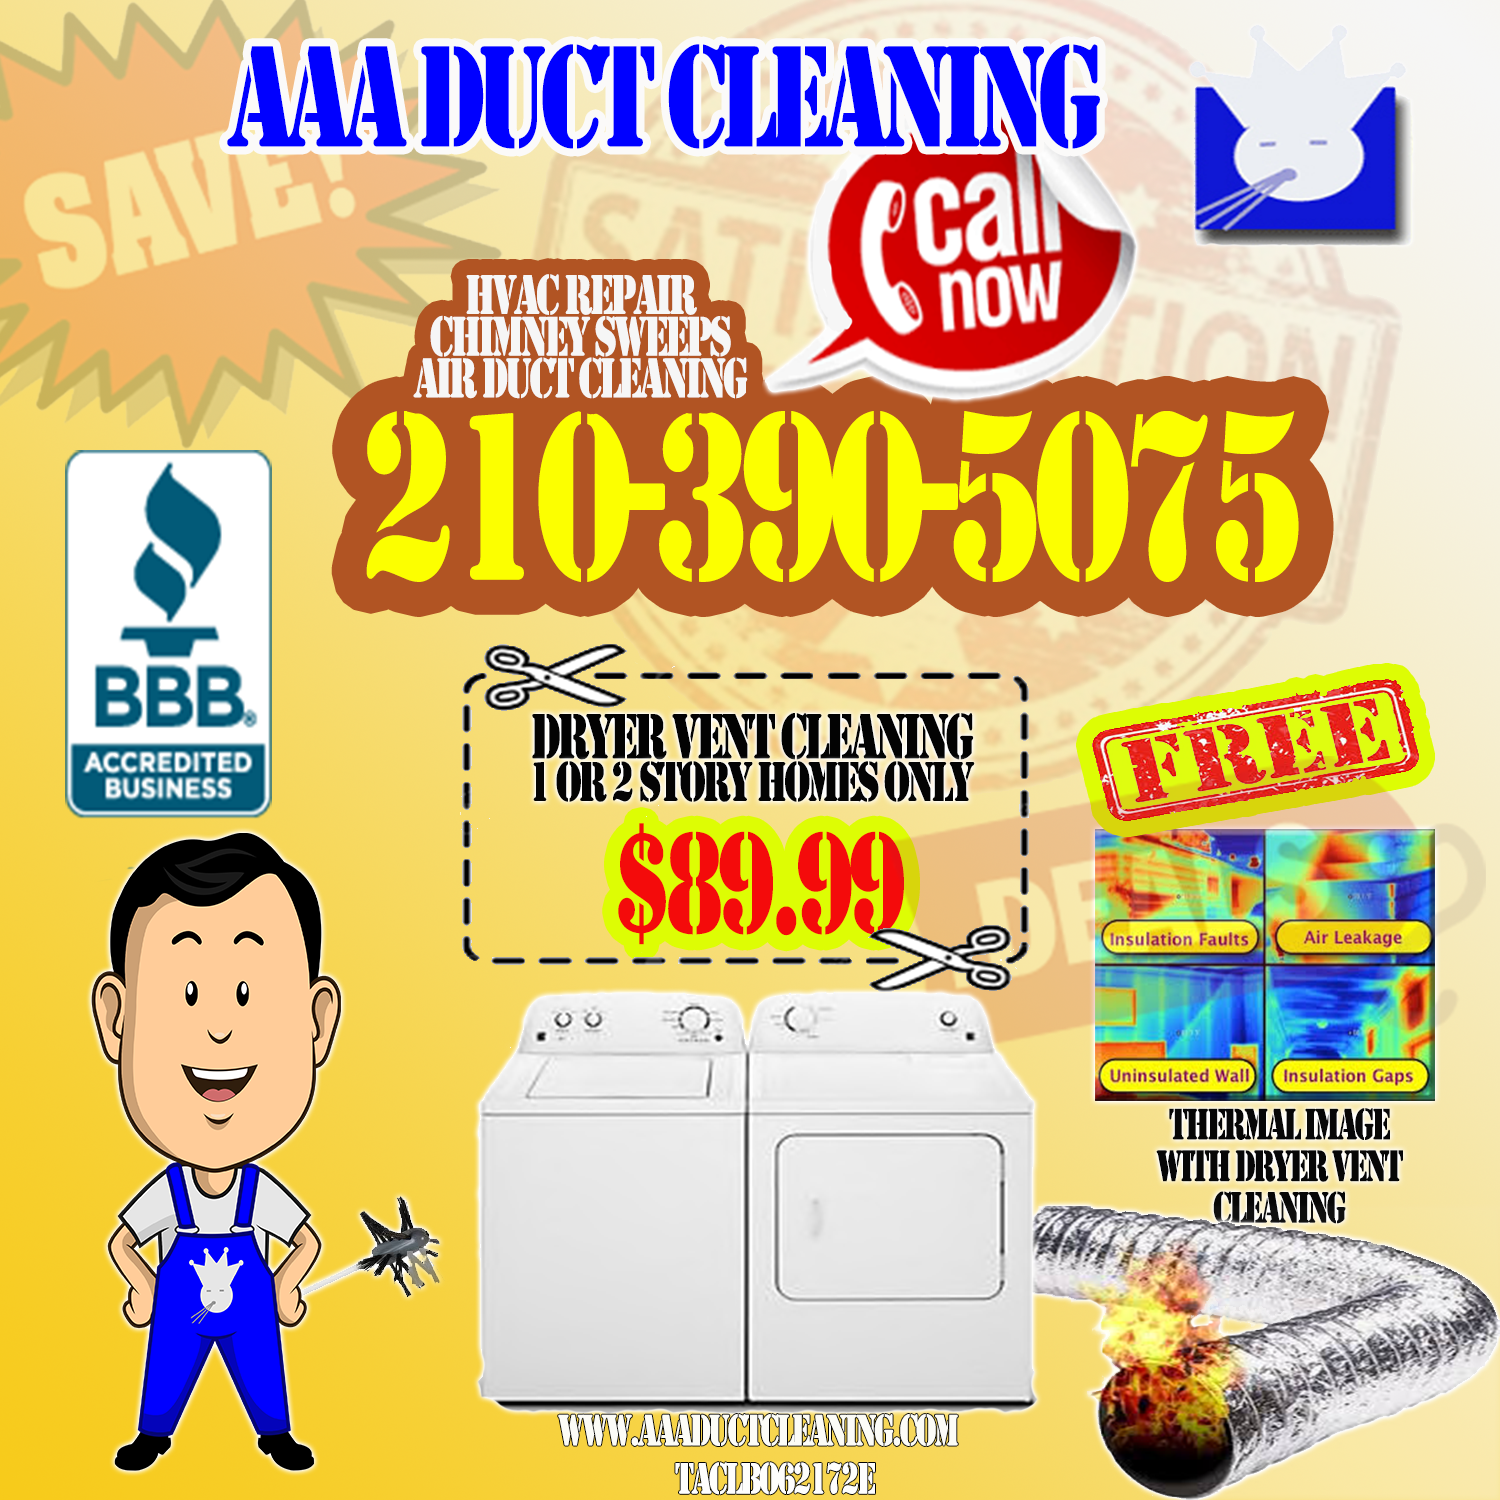 Dryer Vent Cleaning Company Located in San Antonio. Call For your next appointment for annual dryer vent cleaning San Antonio.